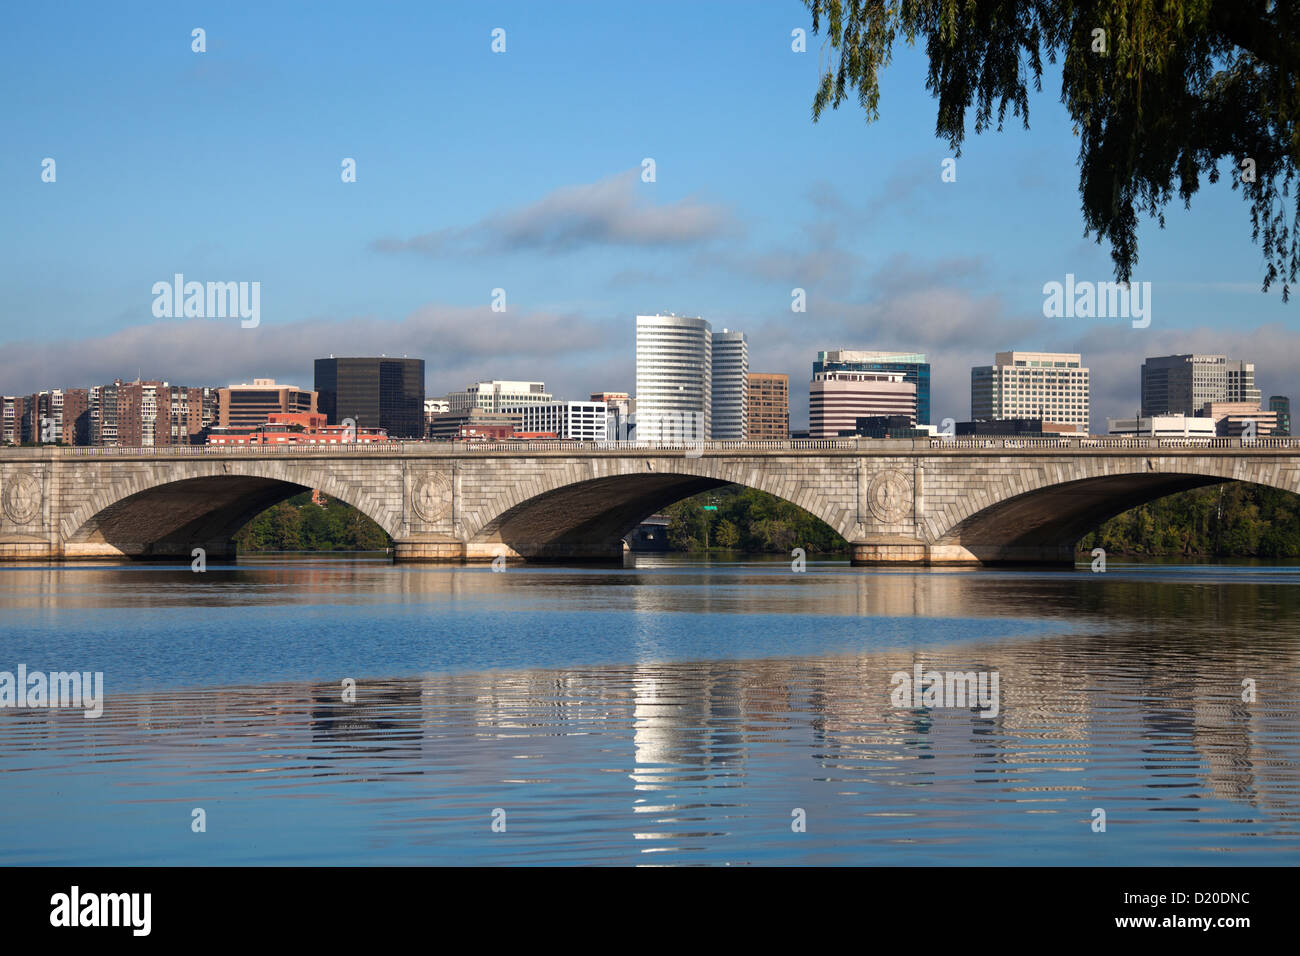 Rosslyn, Virginia and Potomac River during the morning - Stock Image